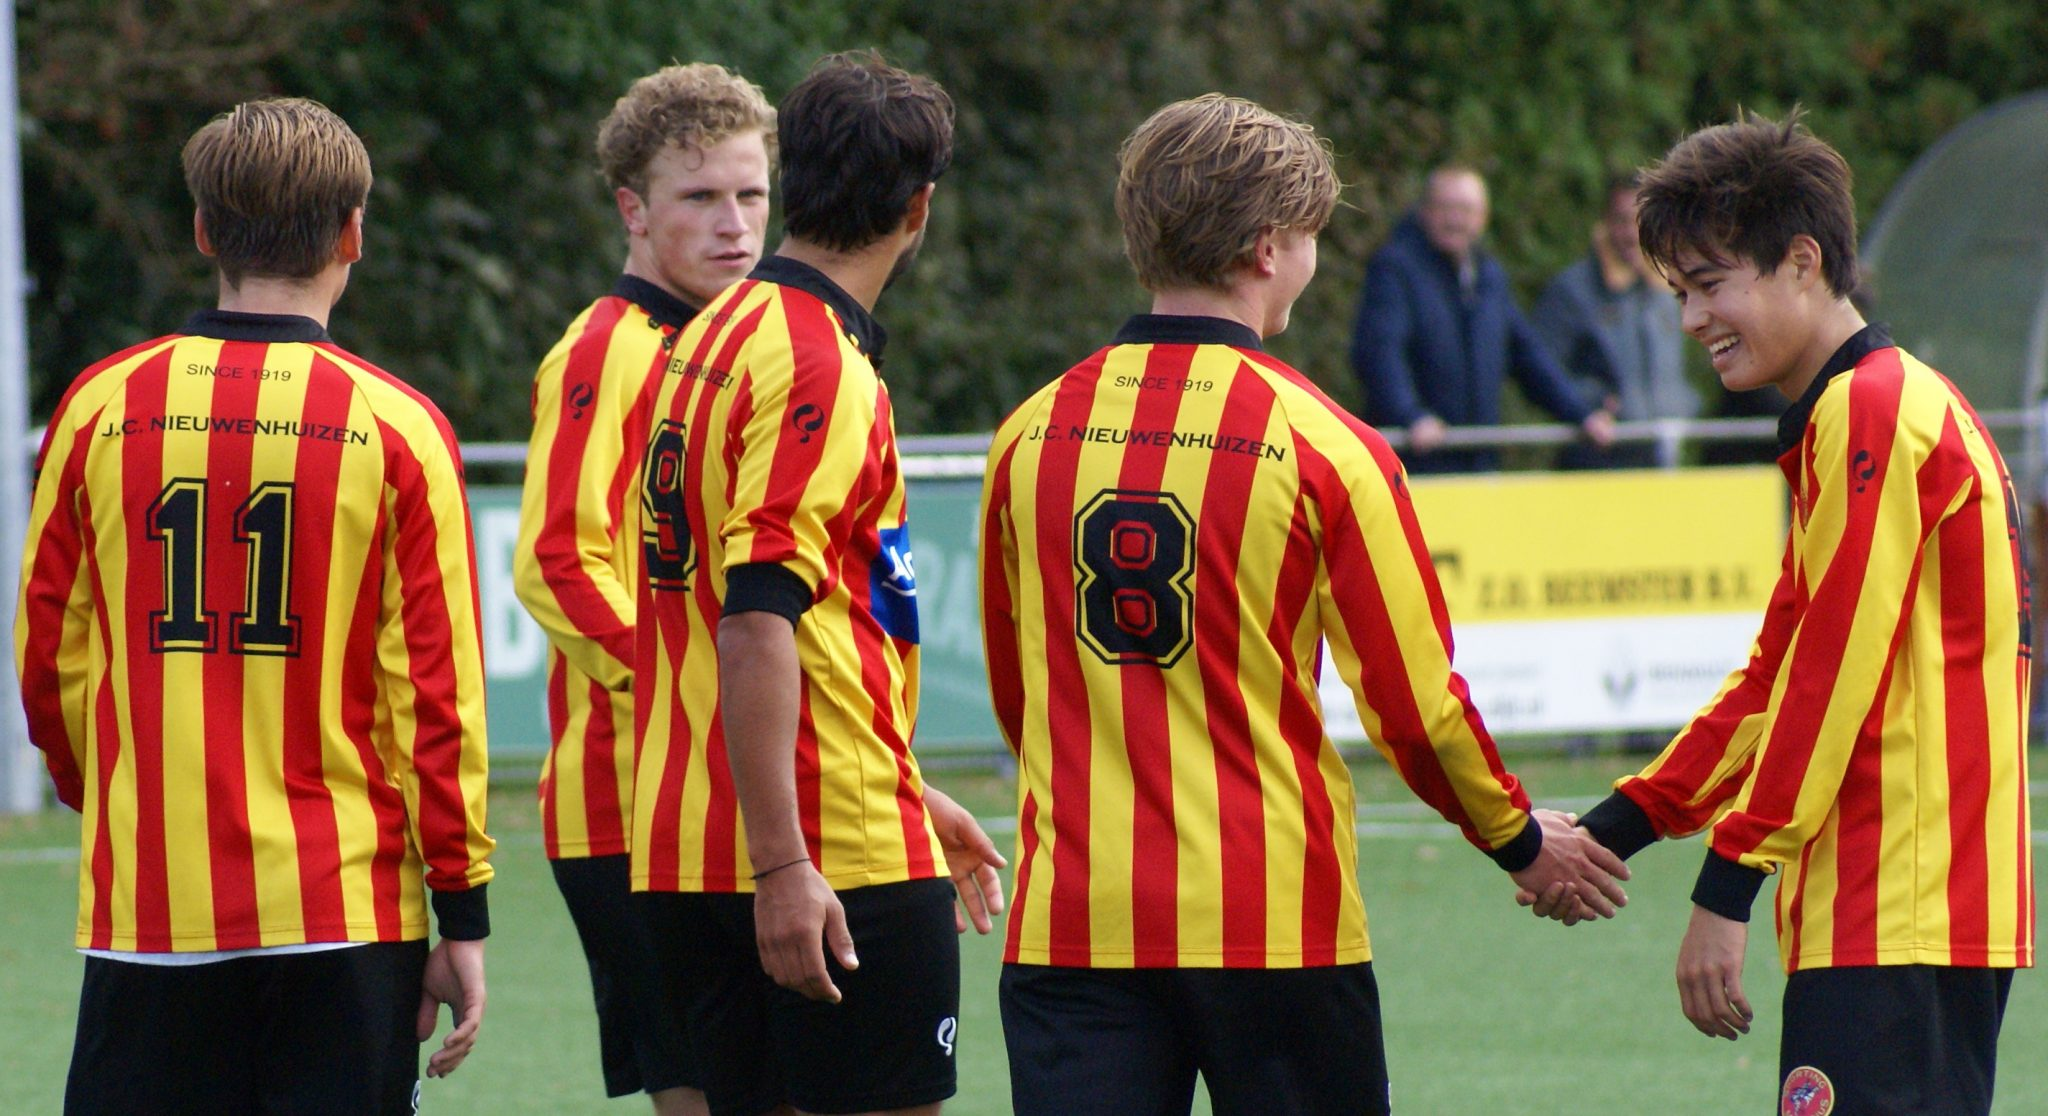 Sporting Martinus in de Top 200 amateurclubs (van de 2407 veldvoetbalclubs in Nederland)